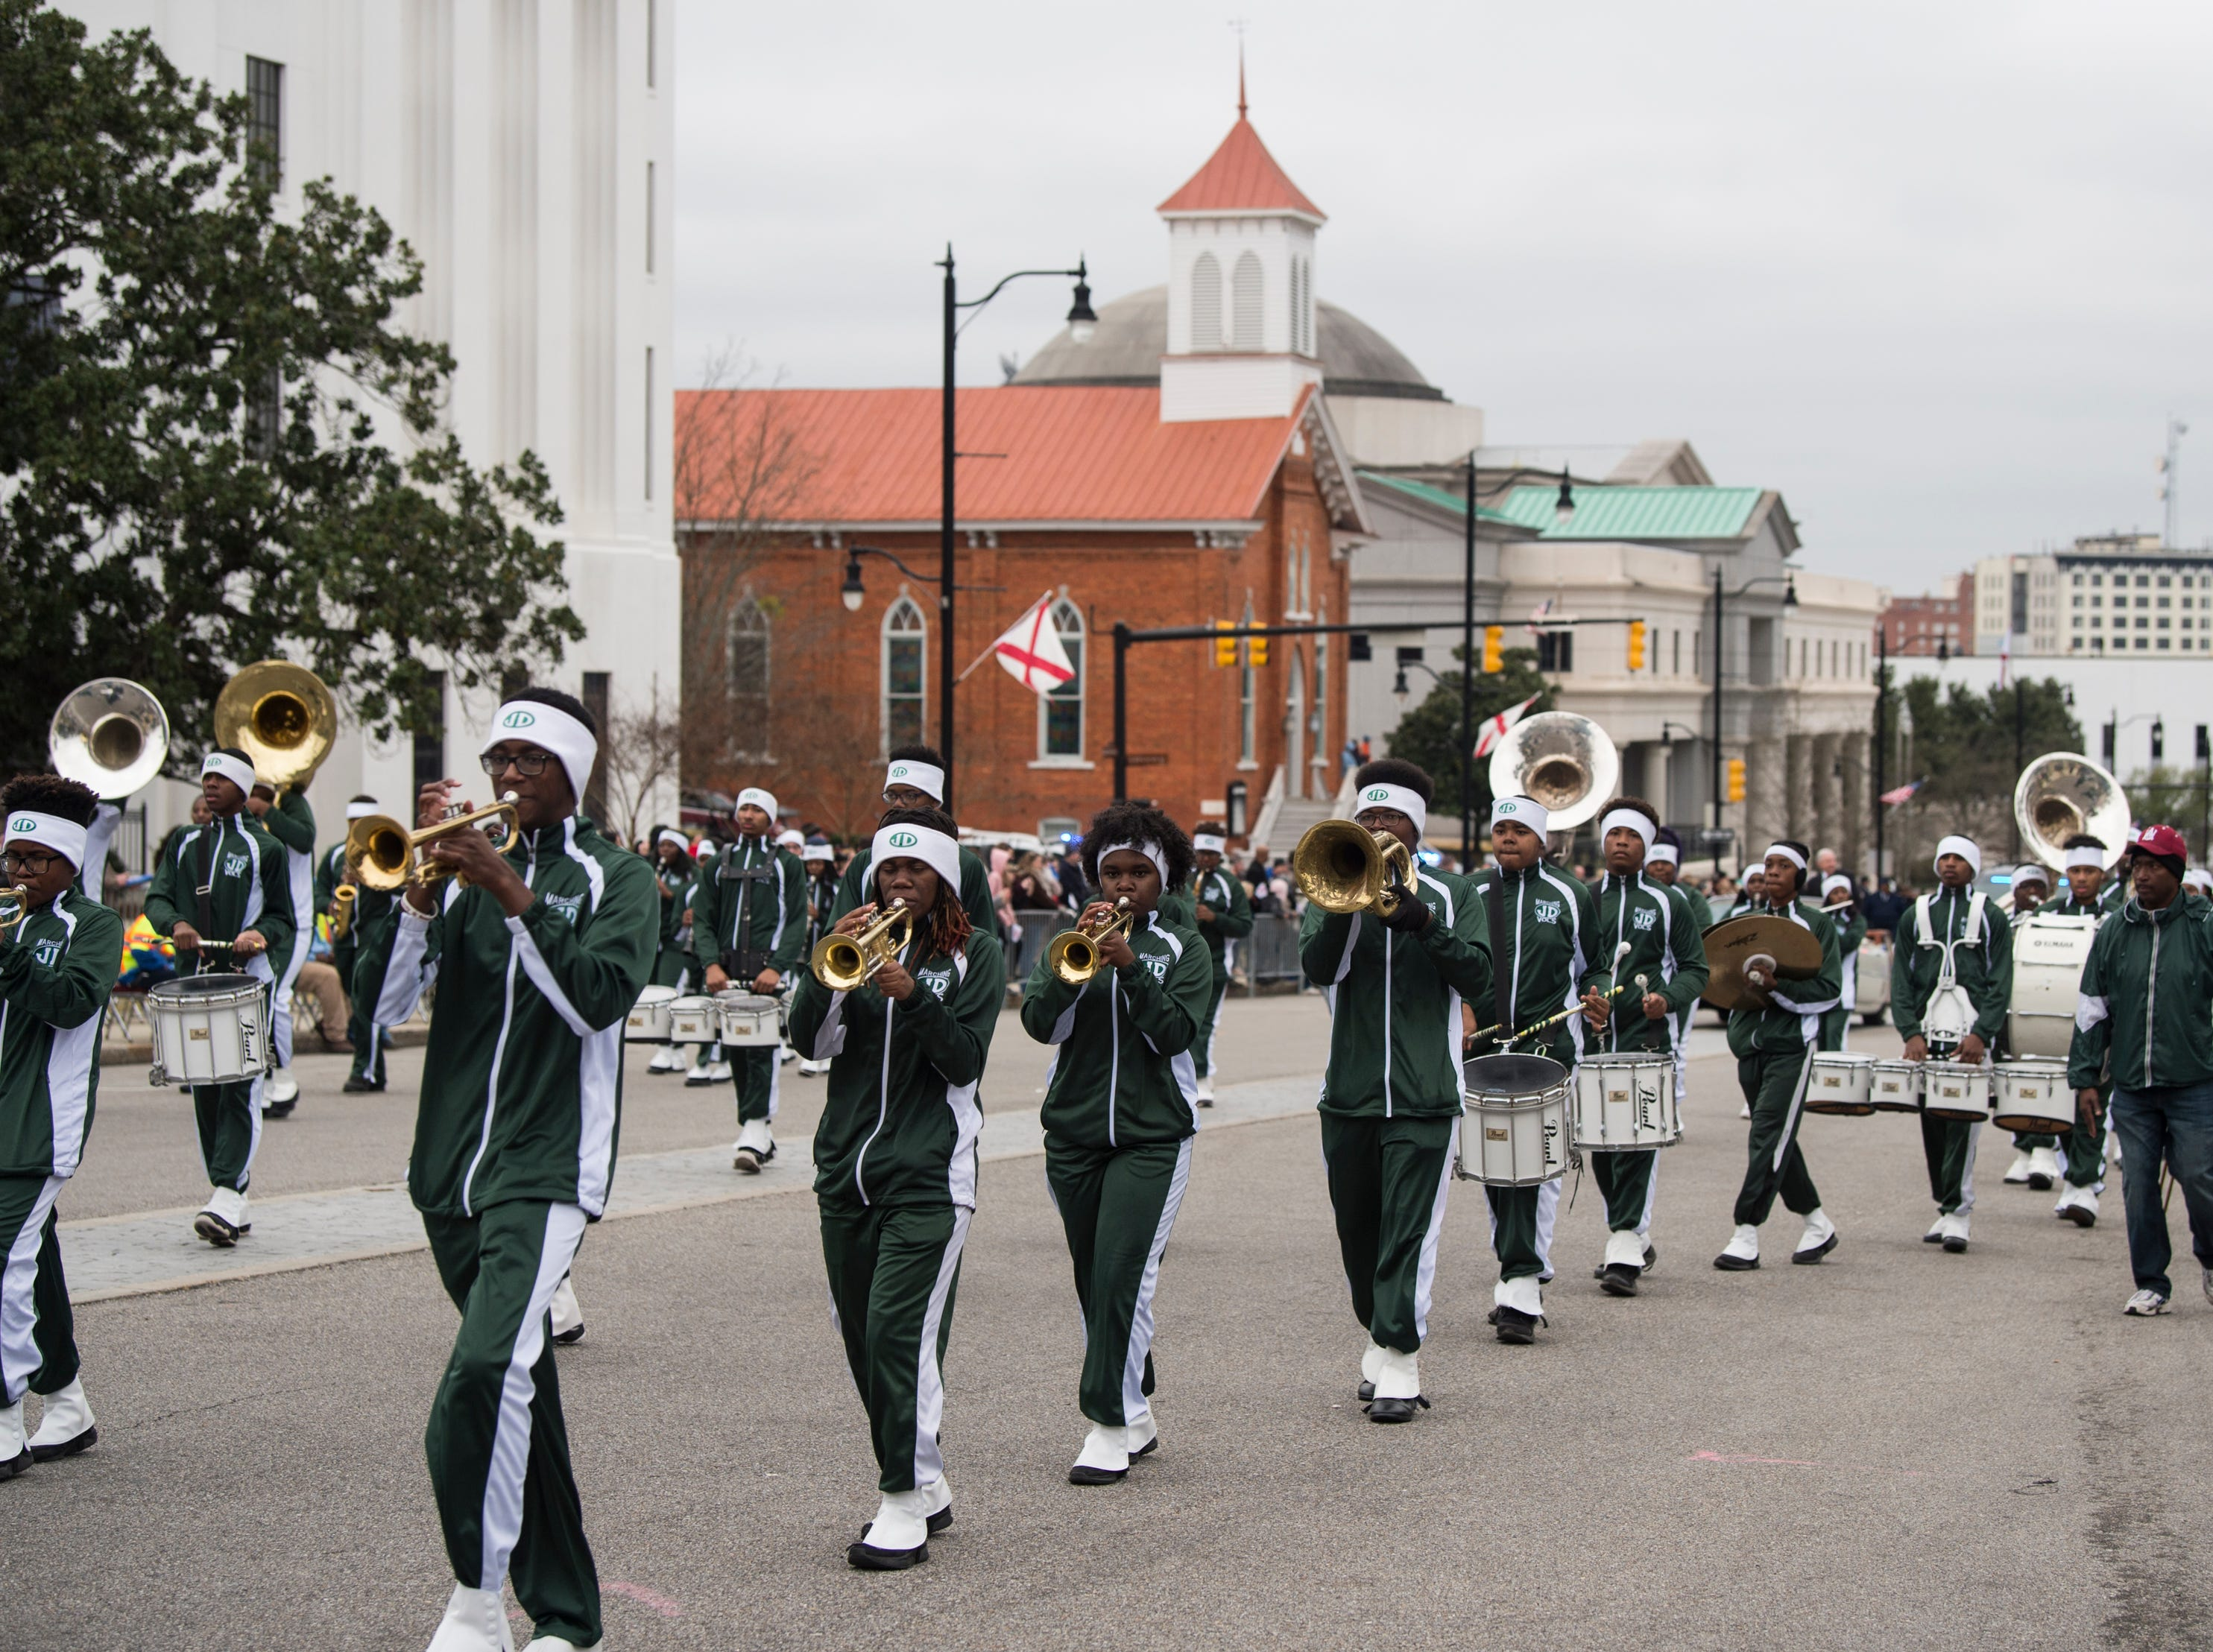 Jefferson Davis High School marching band plays during the inauguration day parade in Montgomery, Ala., on Monday, Jan. 14, 2019.